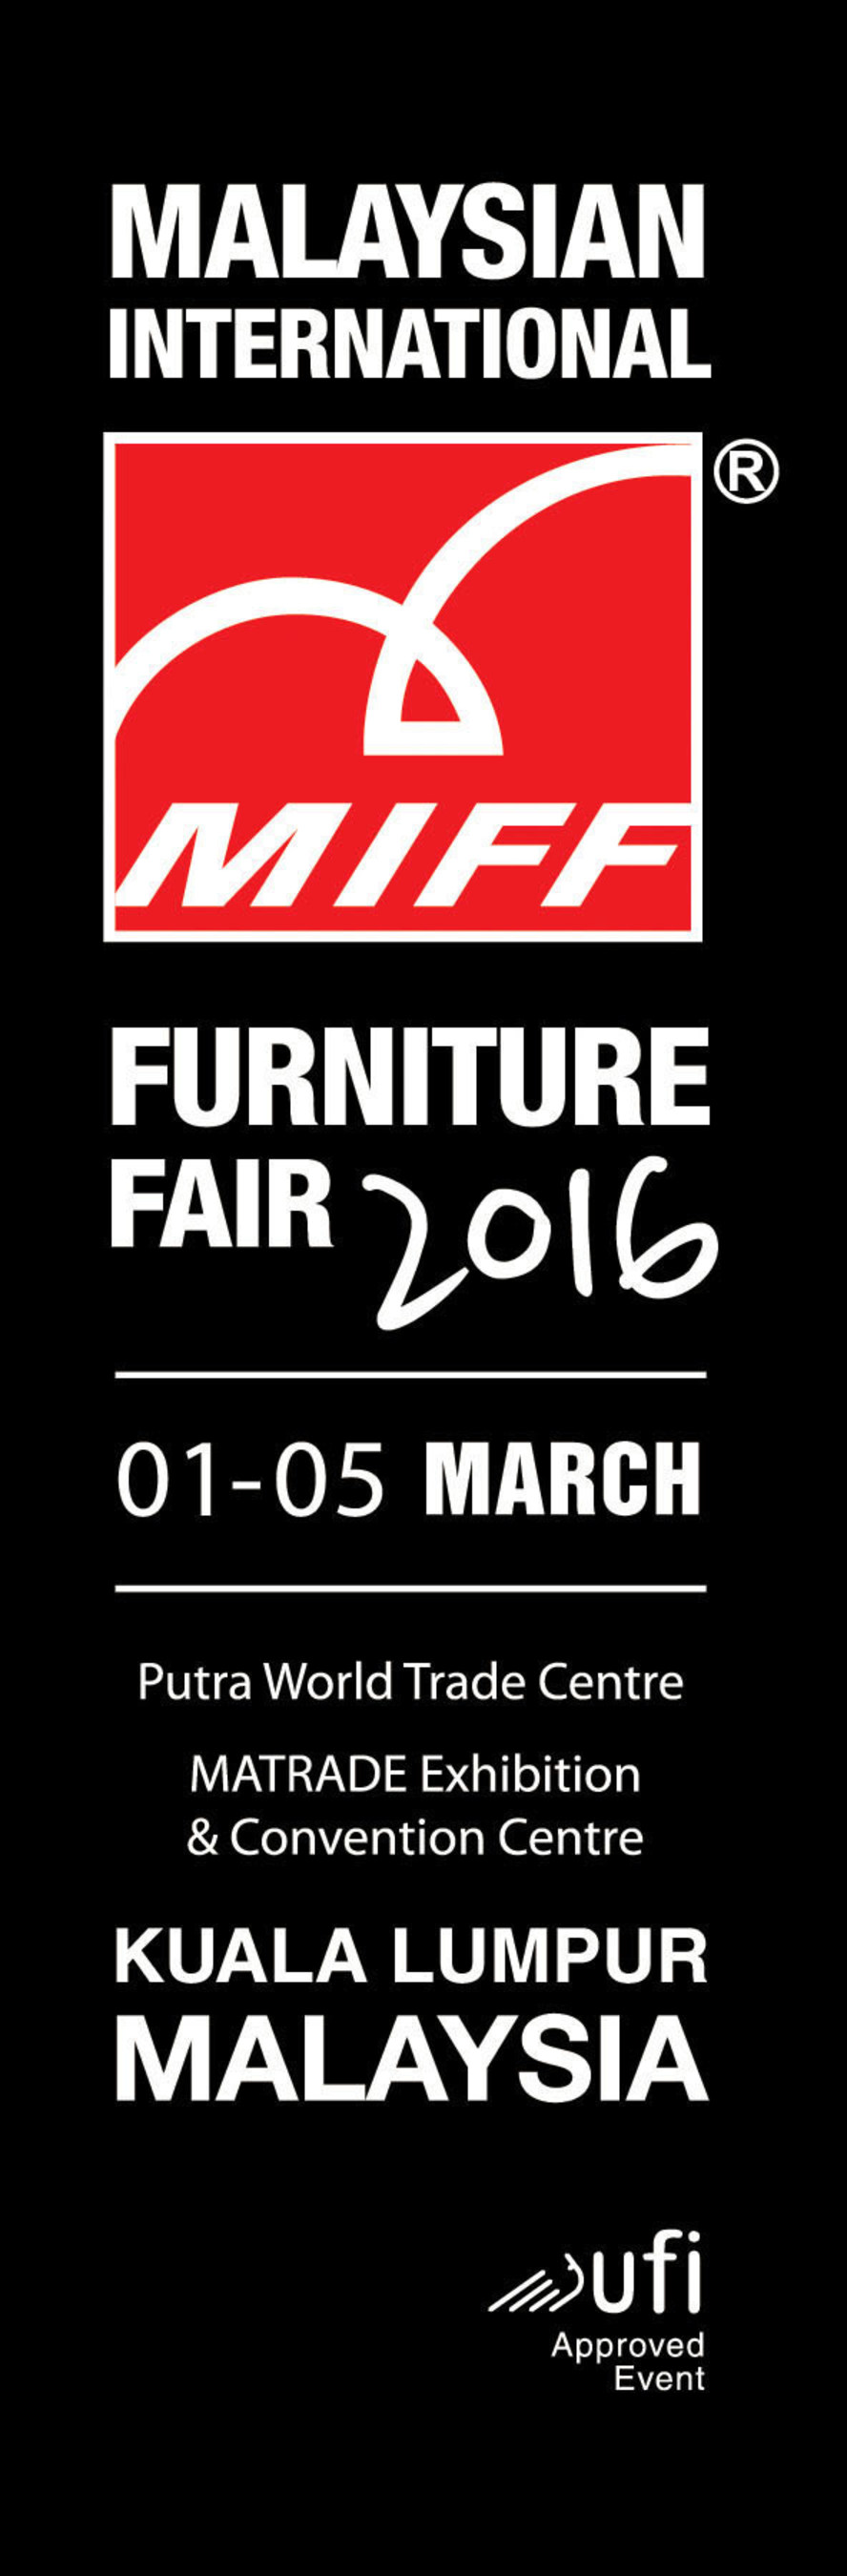 Malaysian International Furniture Fair 2016 Opens With